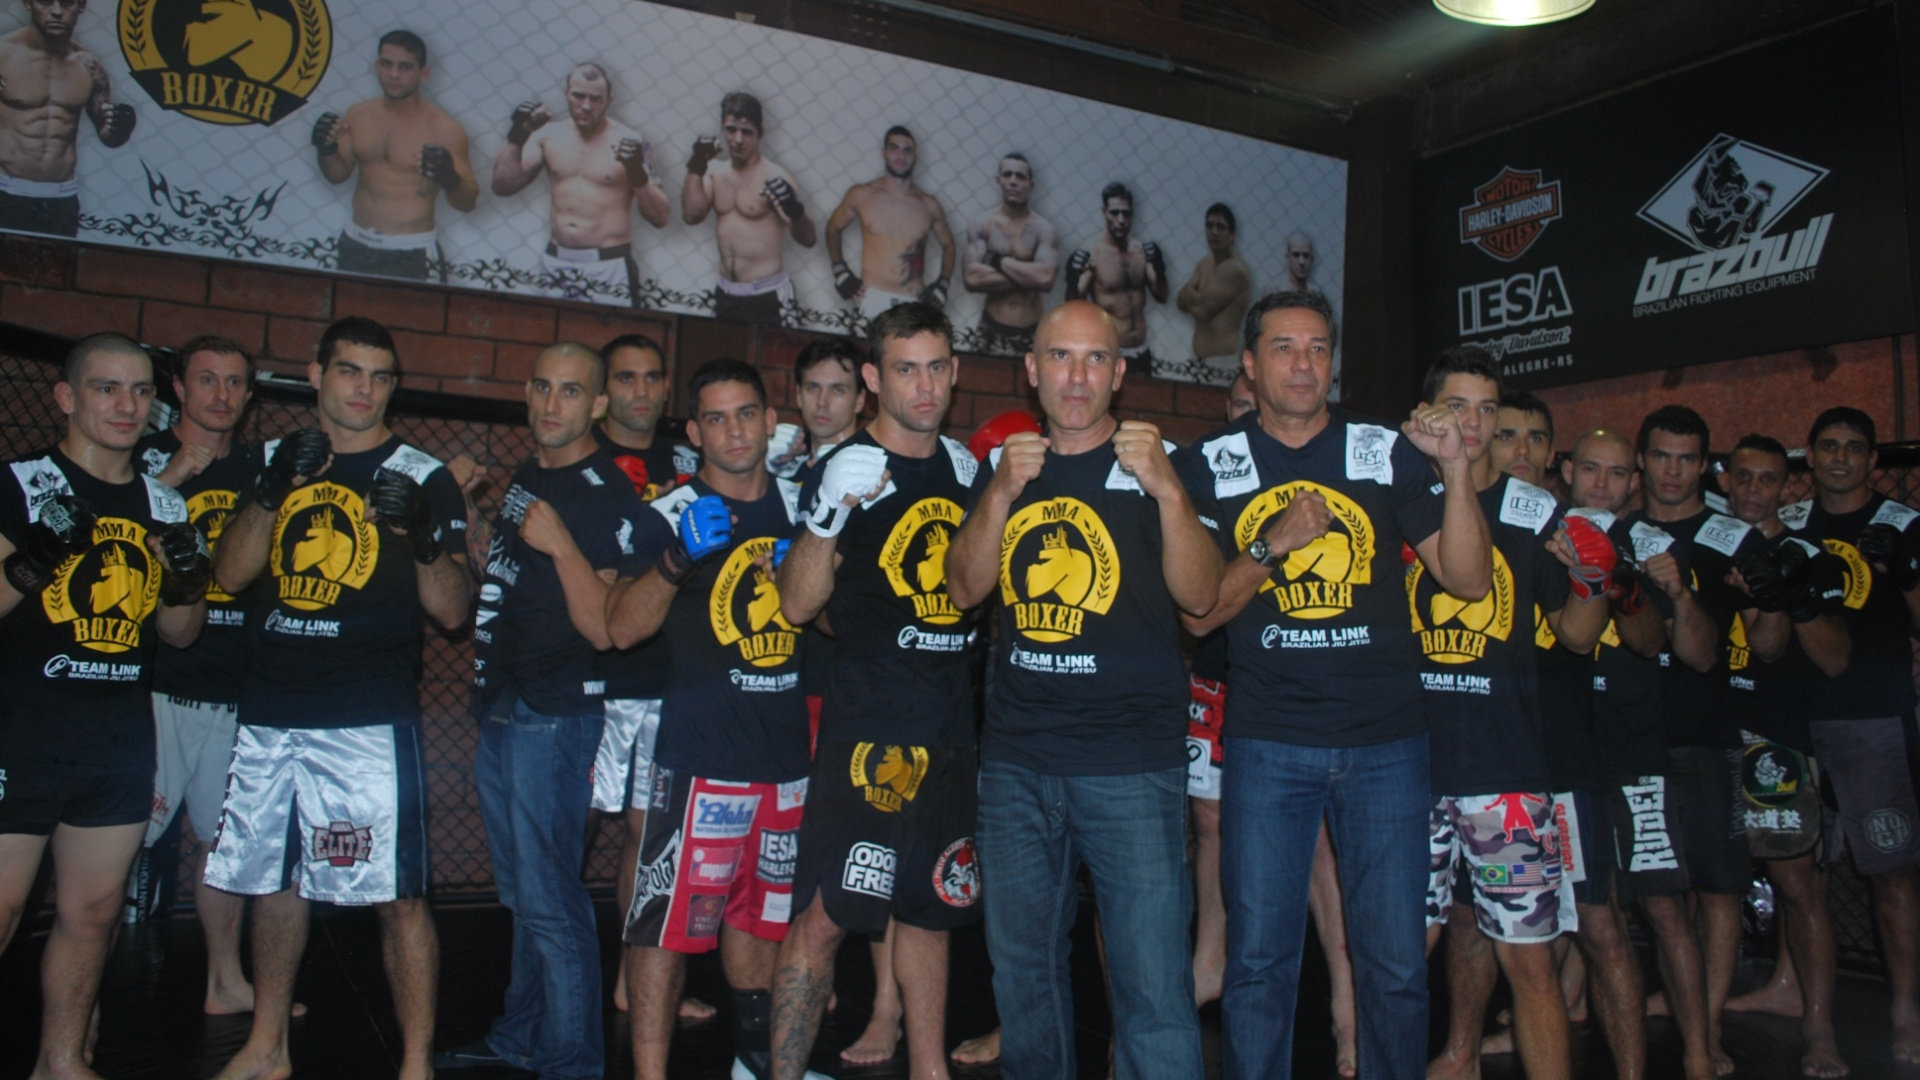 04.04.2012 - Luxa posa ao lado de lutadores de MMA em CT em Porto Alegre